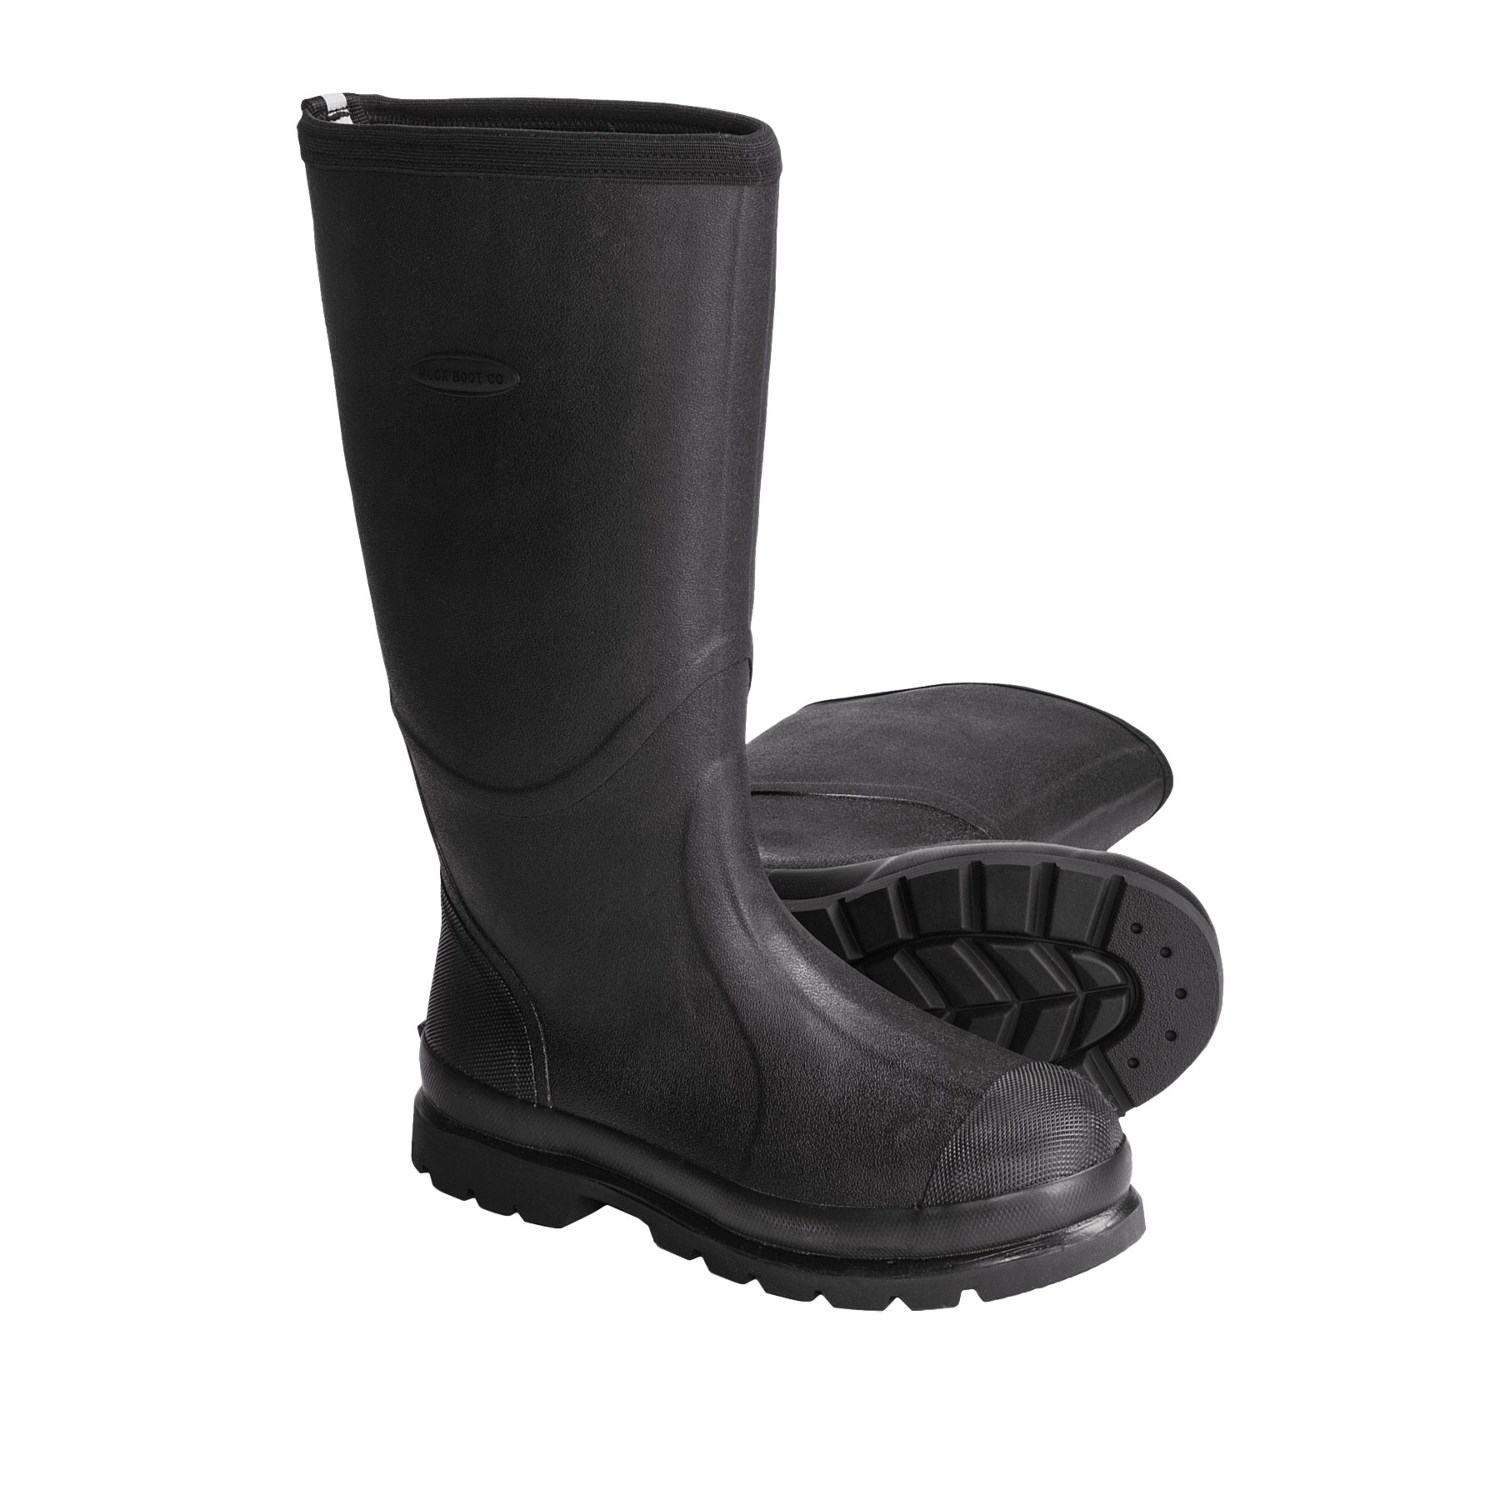 Insulated Muck Boots 4uaT8ont